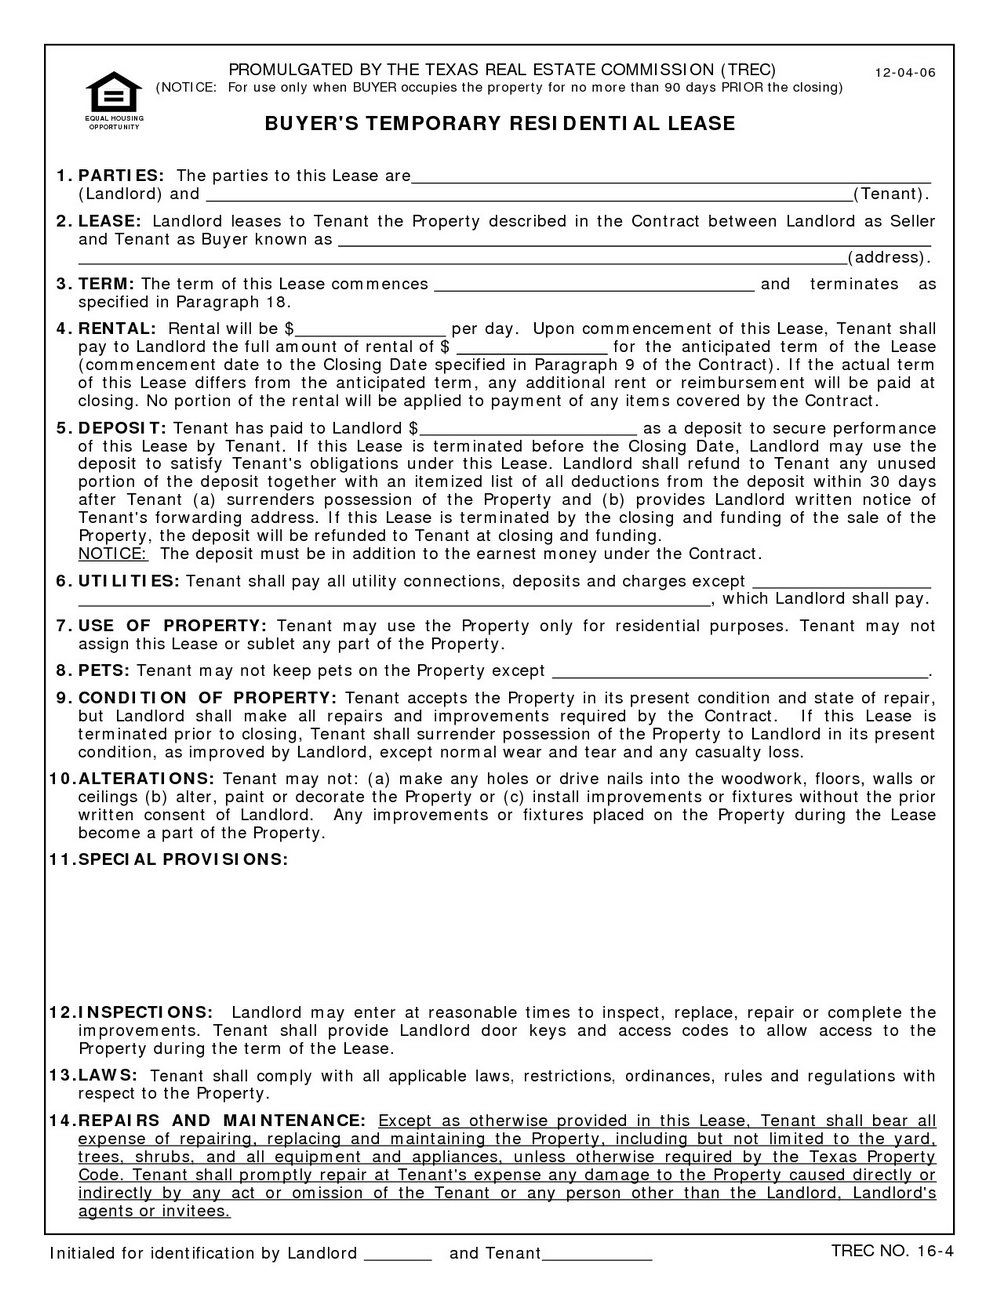 Texas Residential Lease Agreement Template